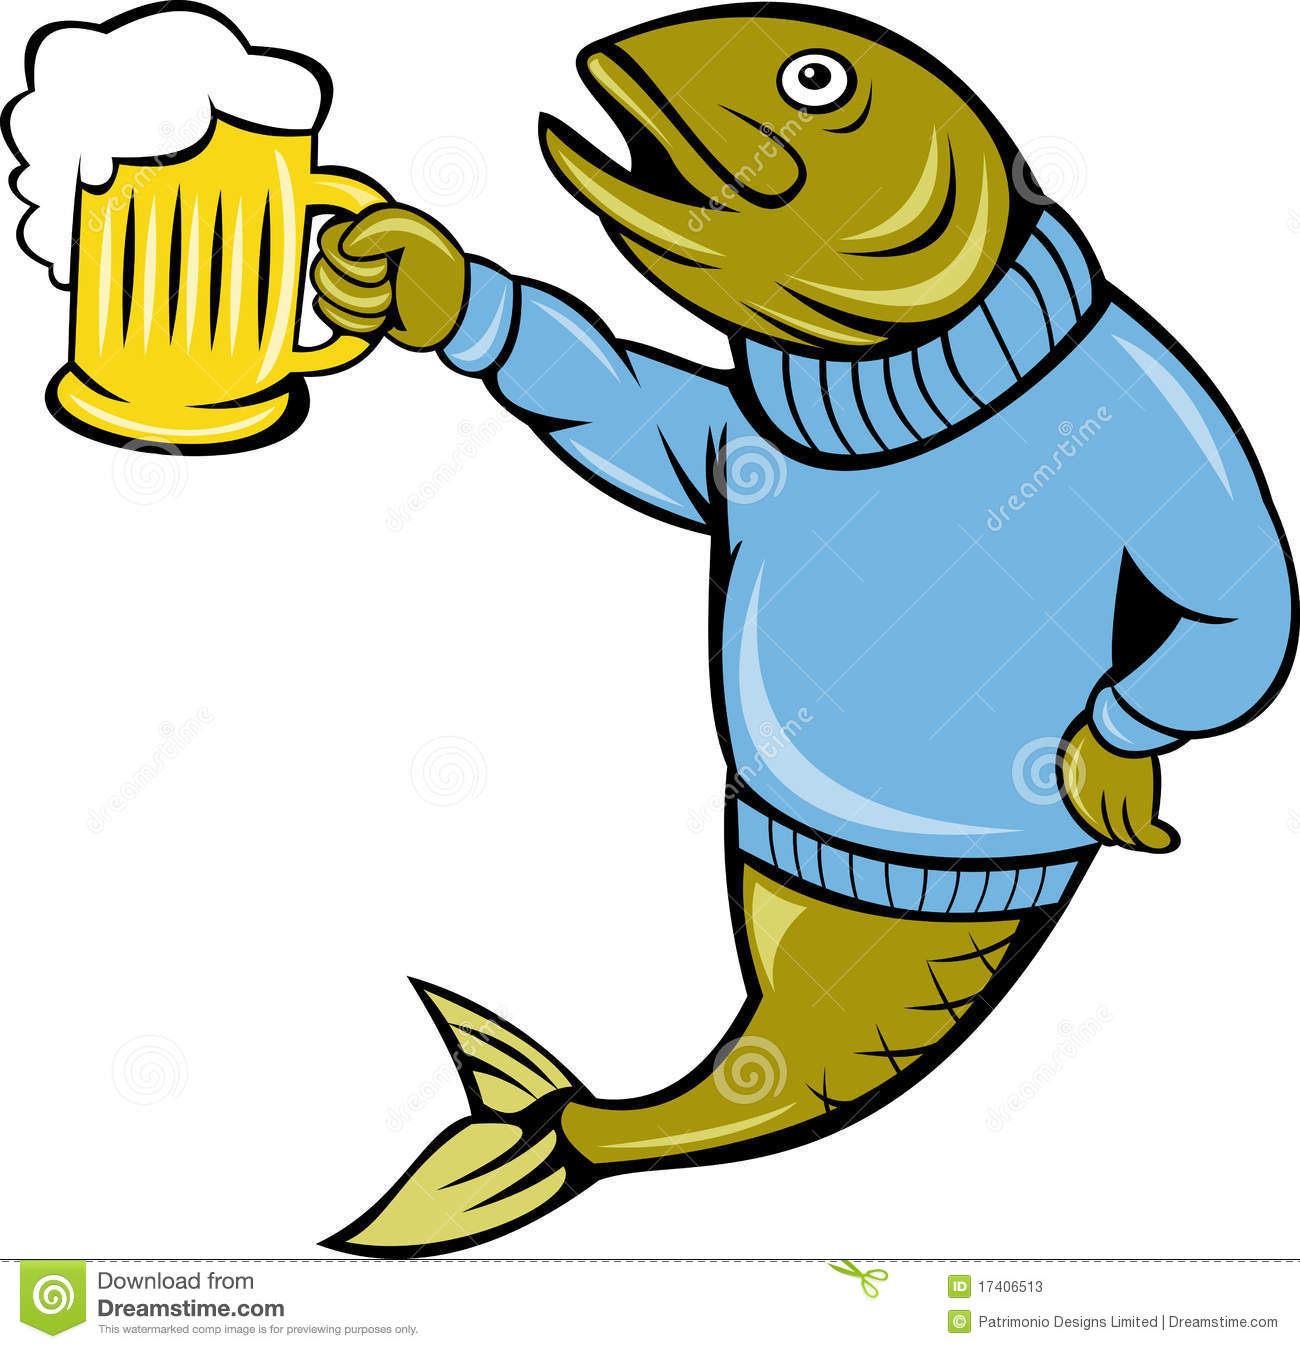 ... Trout fish wearing sweater holding a beer mug isolated on white